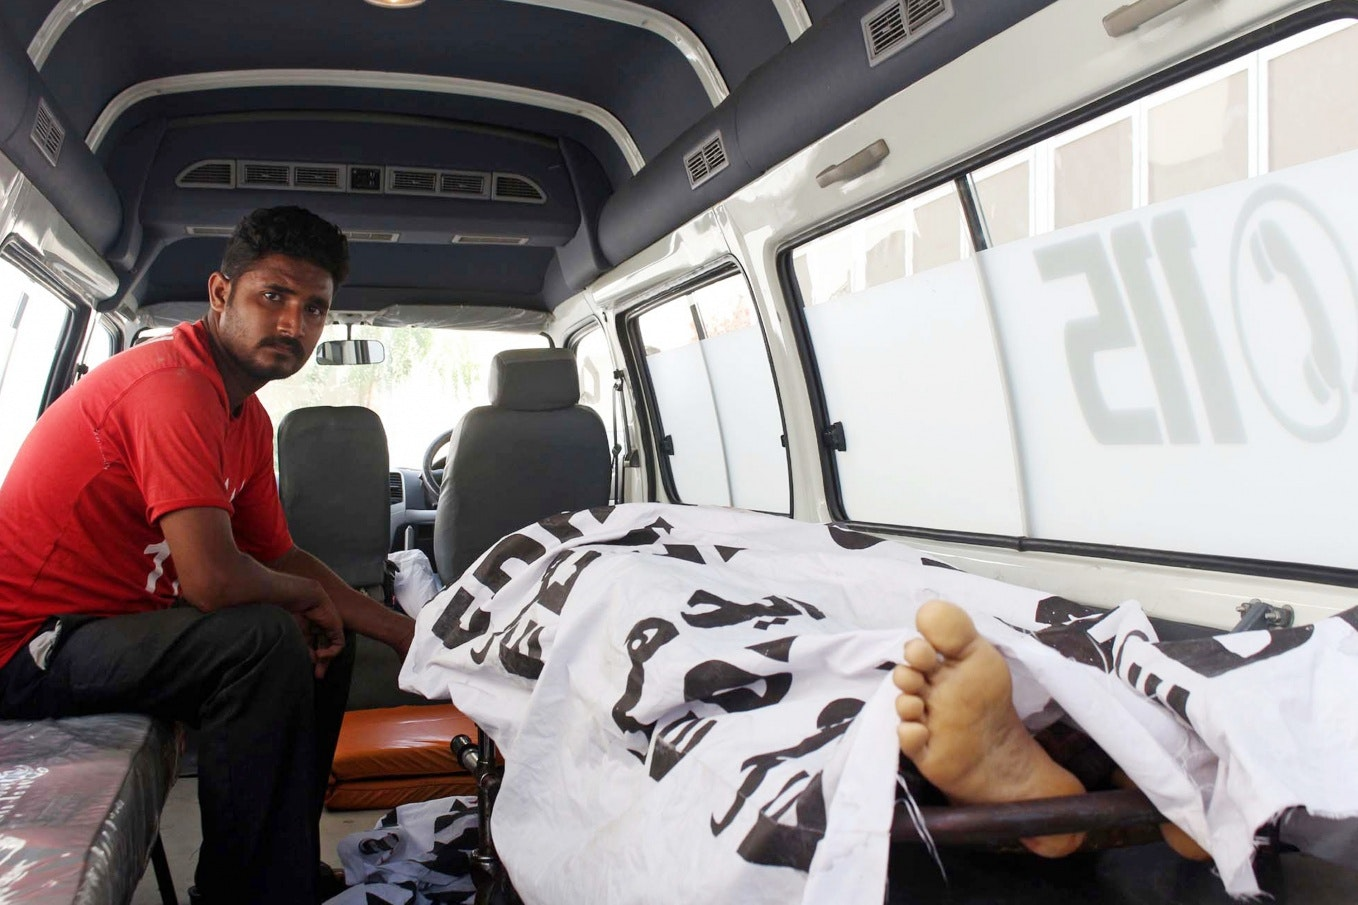 A man next to a covered body in an ambulance